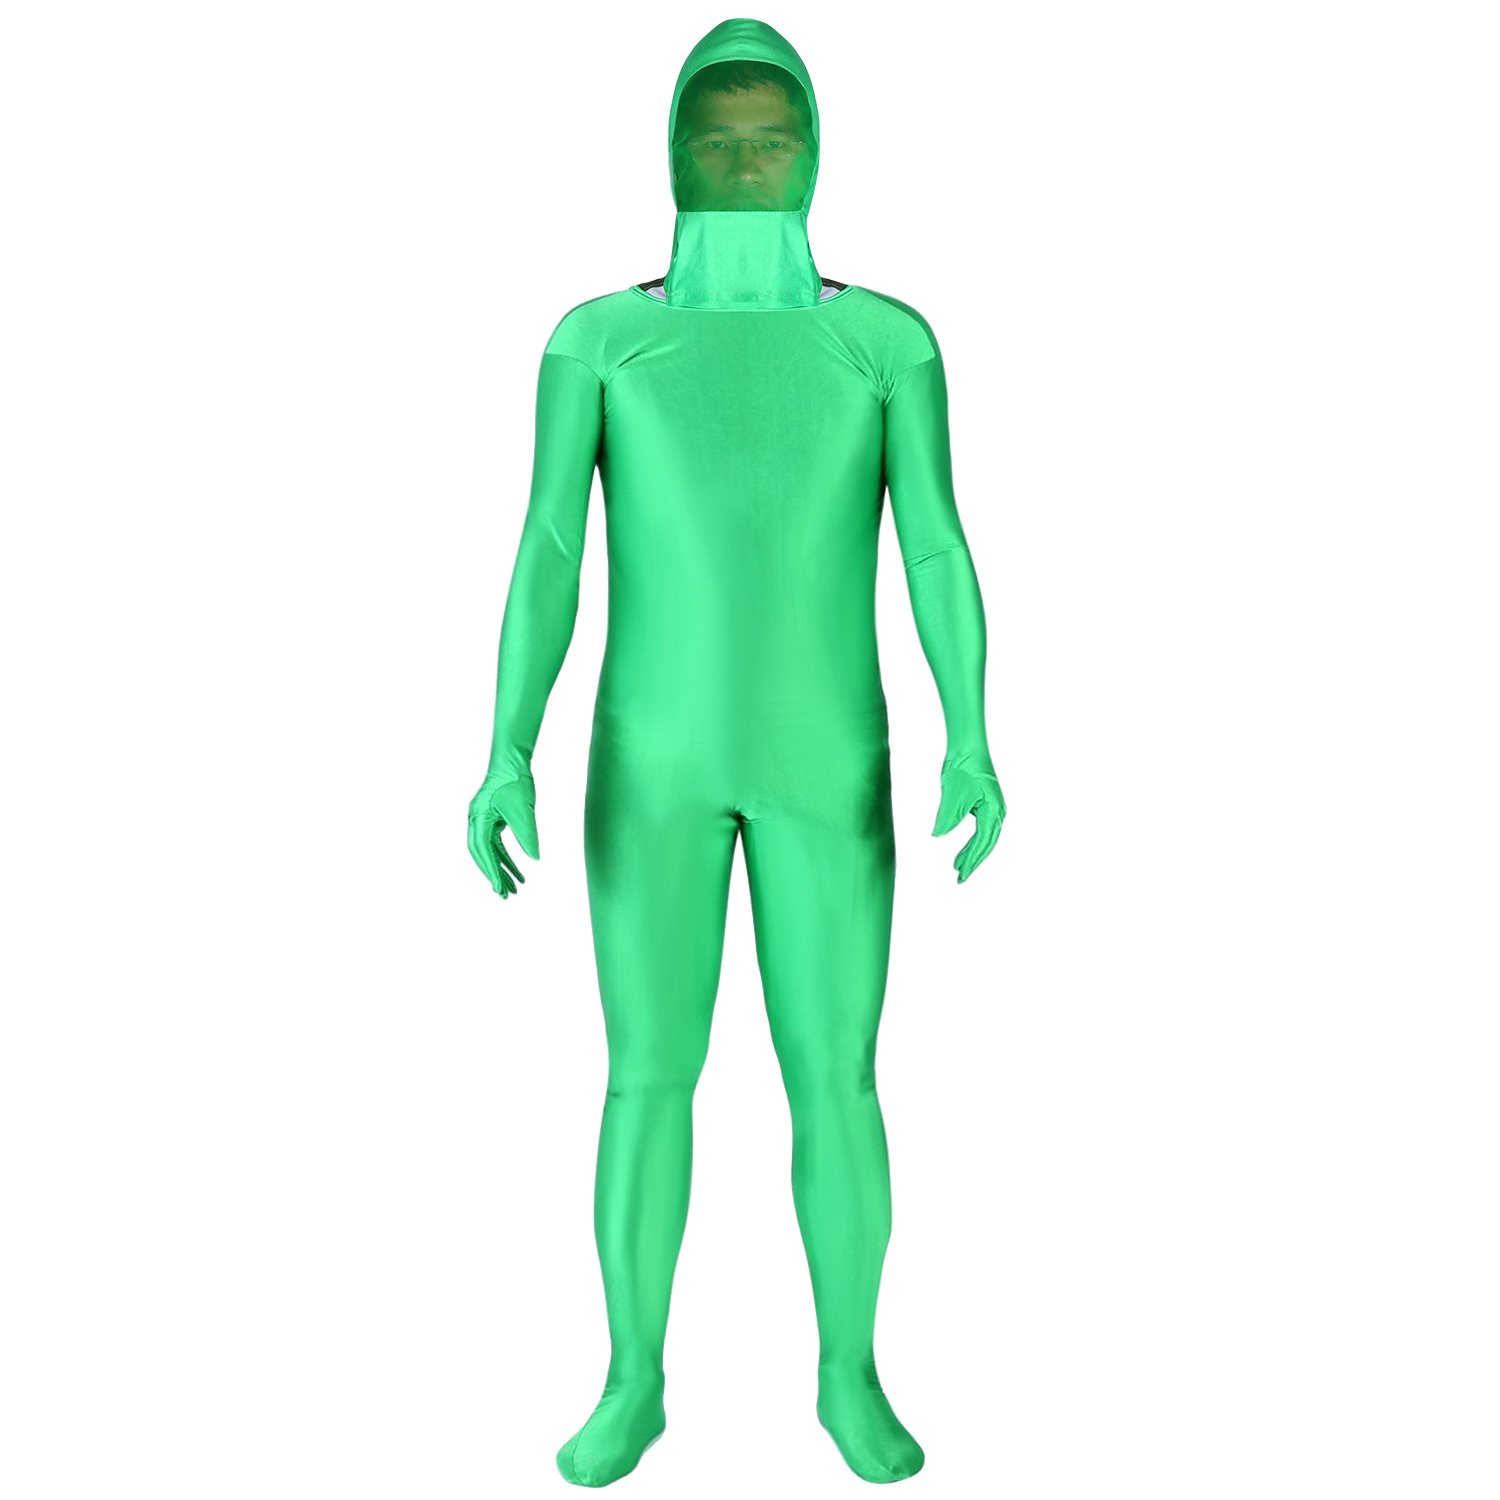 Neewer Photo Video Chromakey Green Suit Green Screen Chroma Key Body Suit for Photo Video Invisible Effect by Neewer